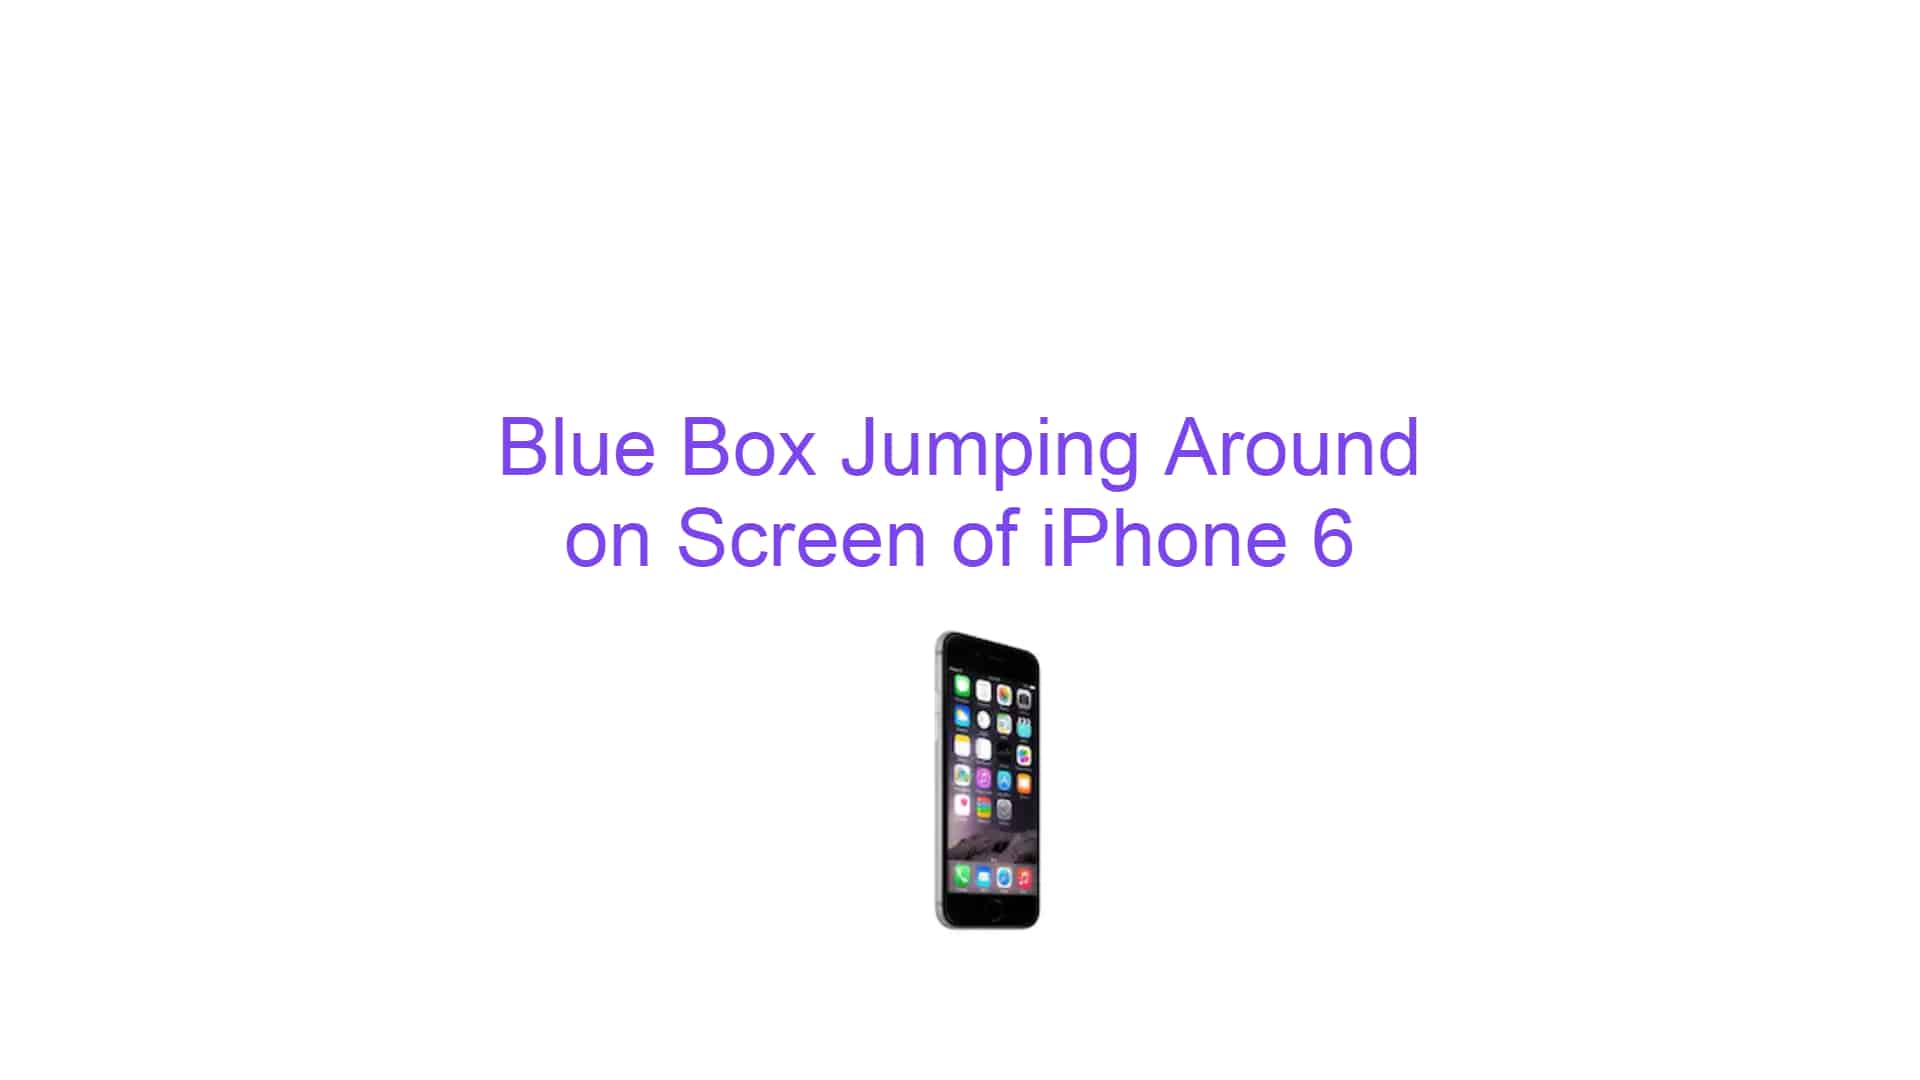 Blue Box Jumping Around on Screen of iPhone 6 - How To Get Rid Of Bottom Bar On Iphone 6